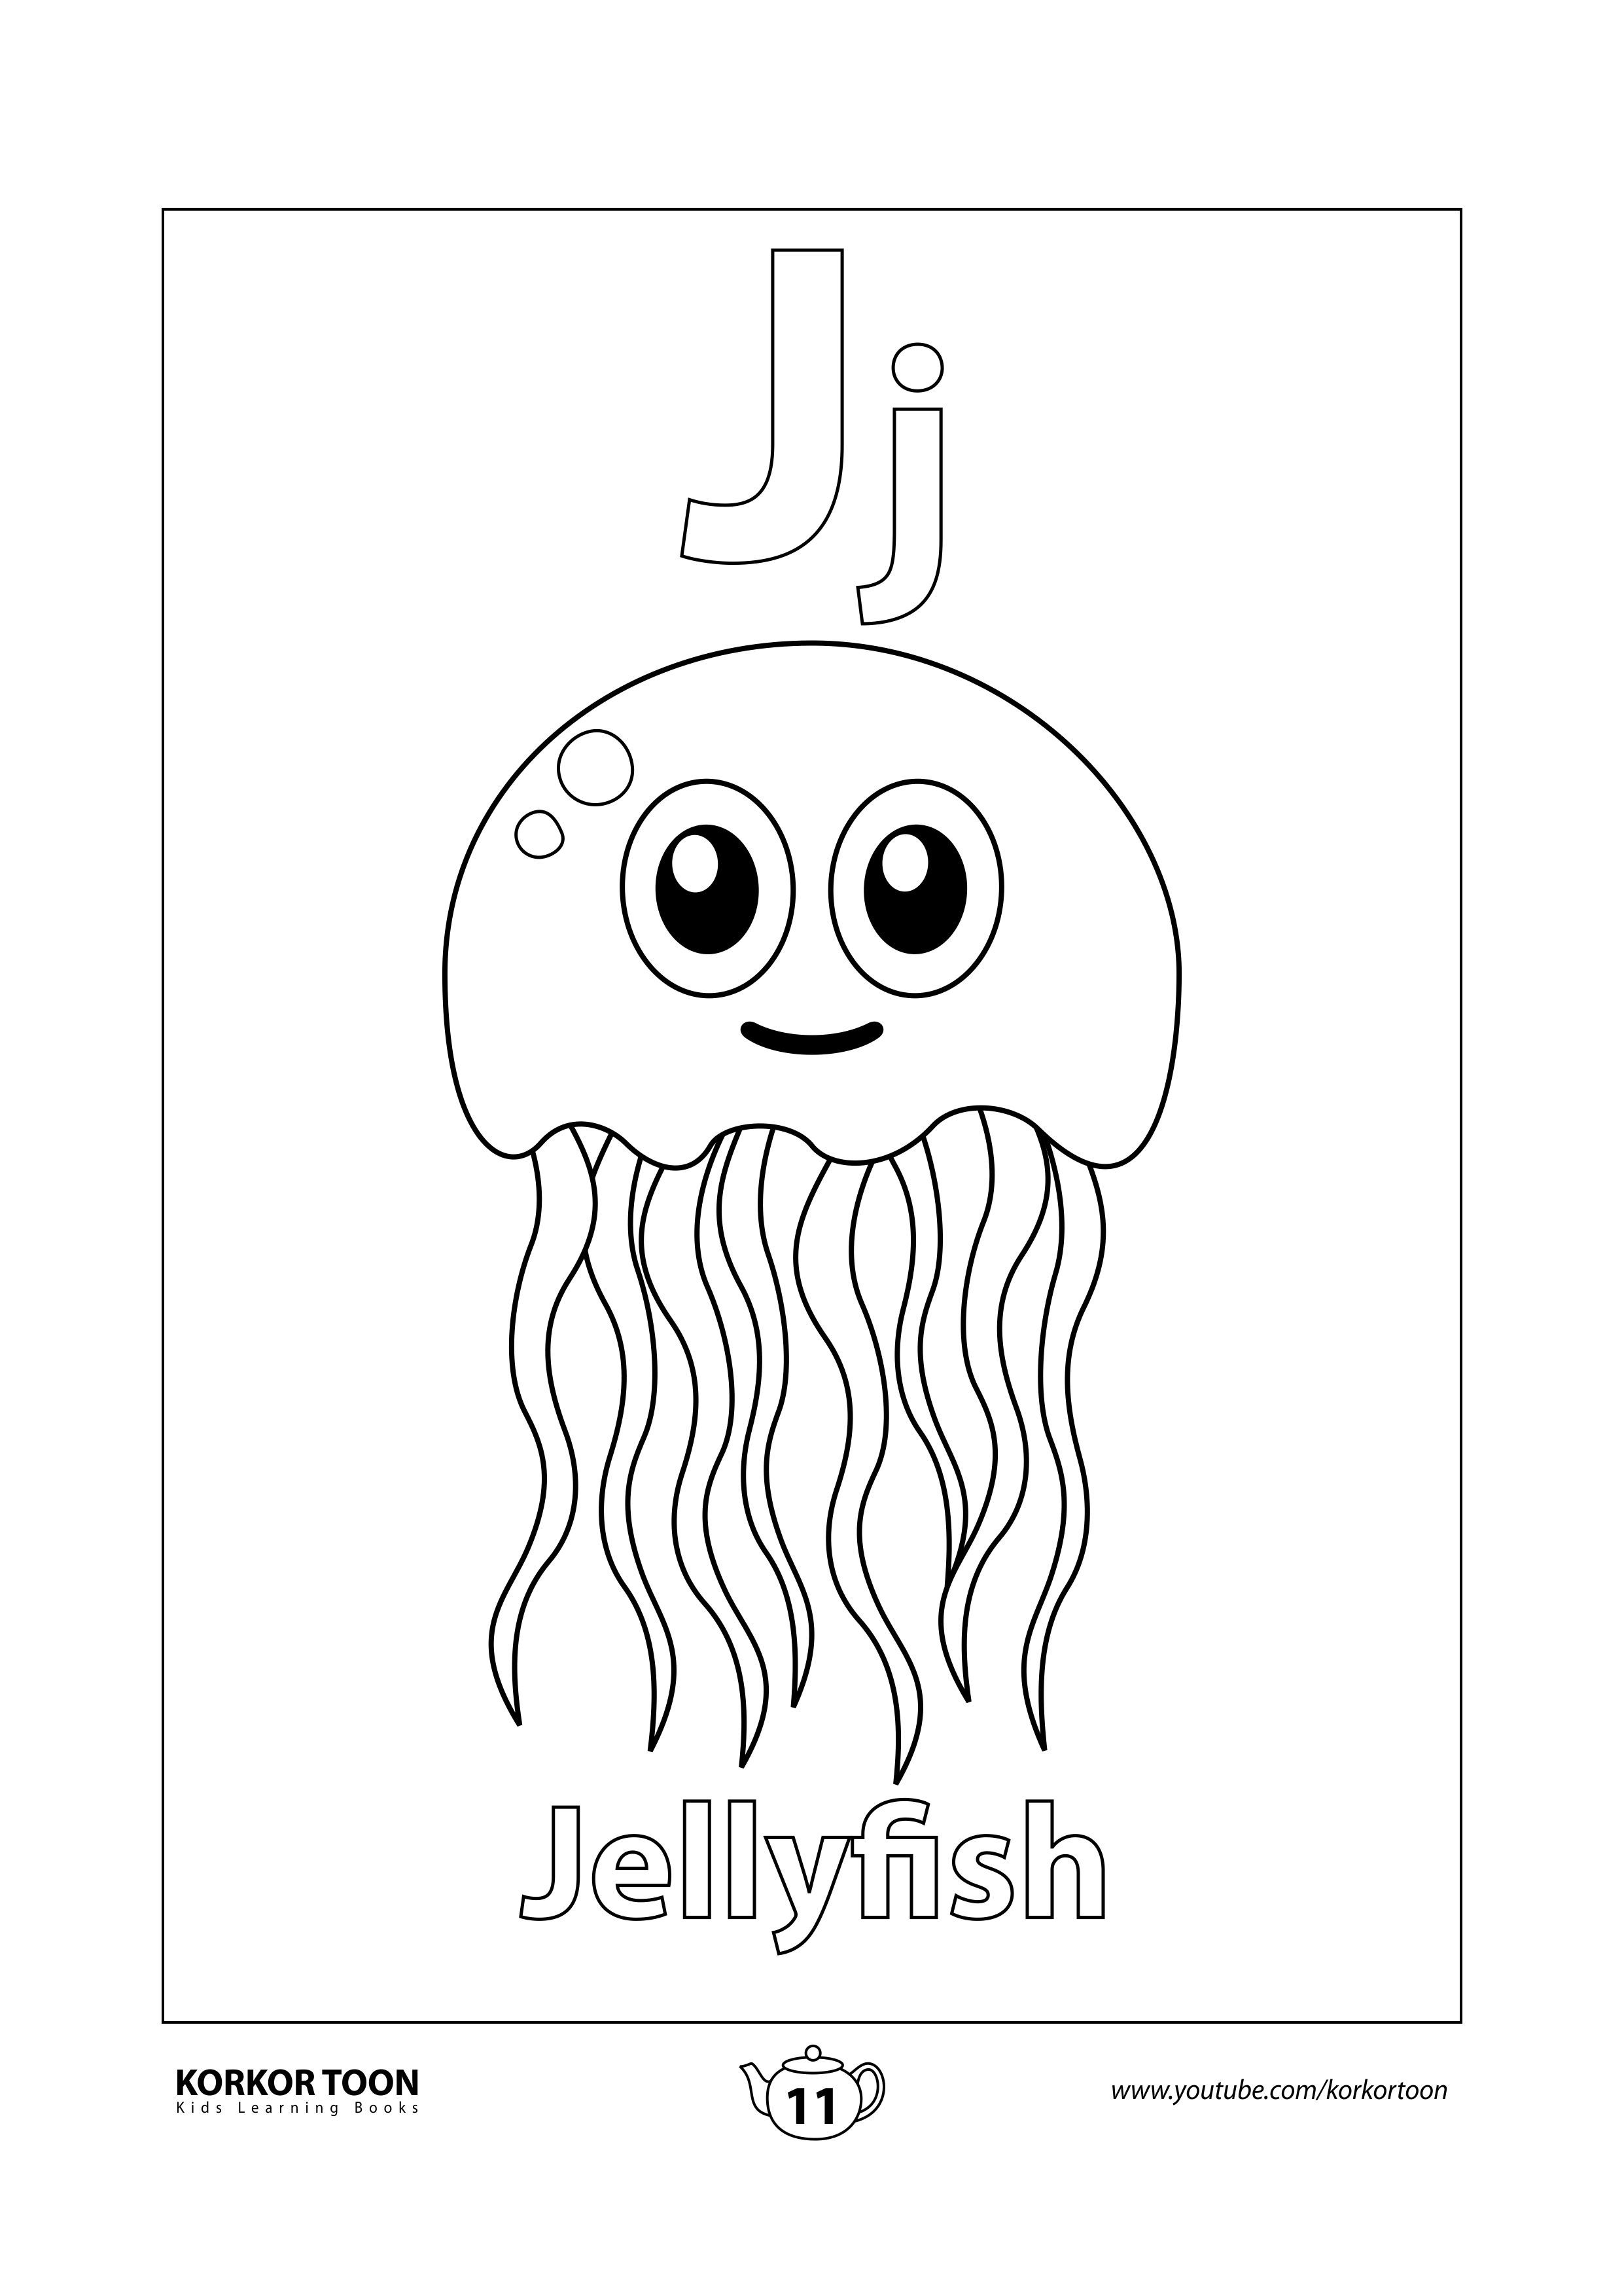 Jellyfish Coloring Page Abc Coloring Book Abc Coloring Coloring Books Kids Coloring Books